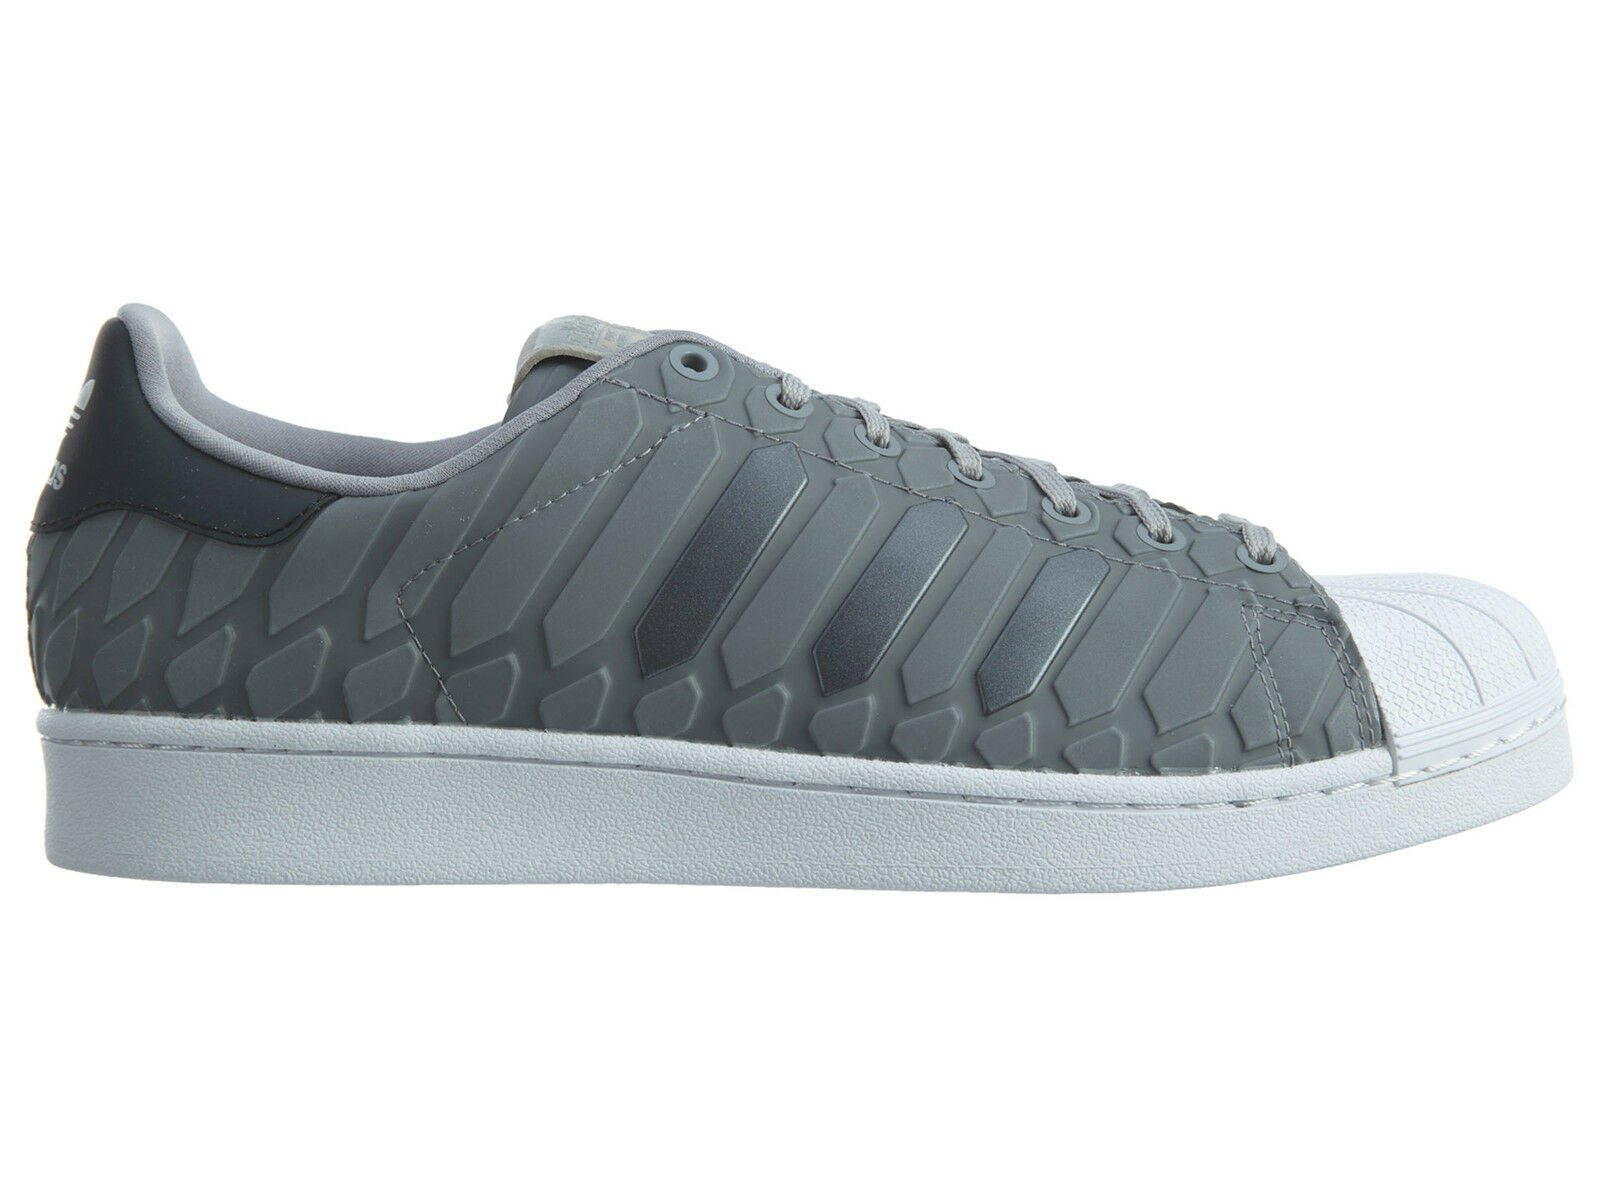 fdc112955 ... coupon for adidas superstar xeno mens d69367 onix grey reflective shell  toe shoes size 12 40278